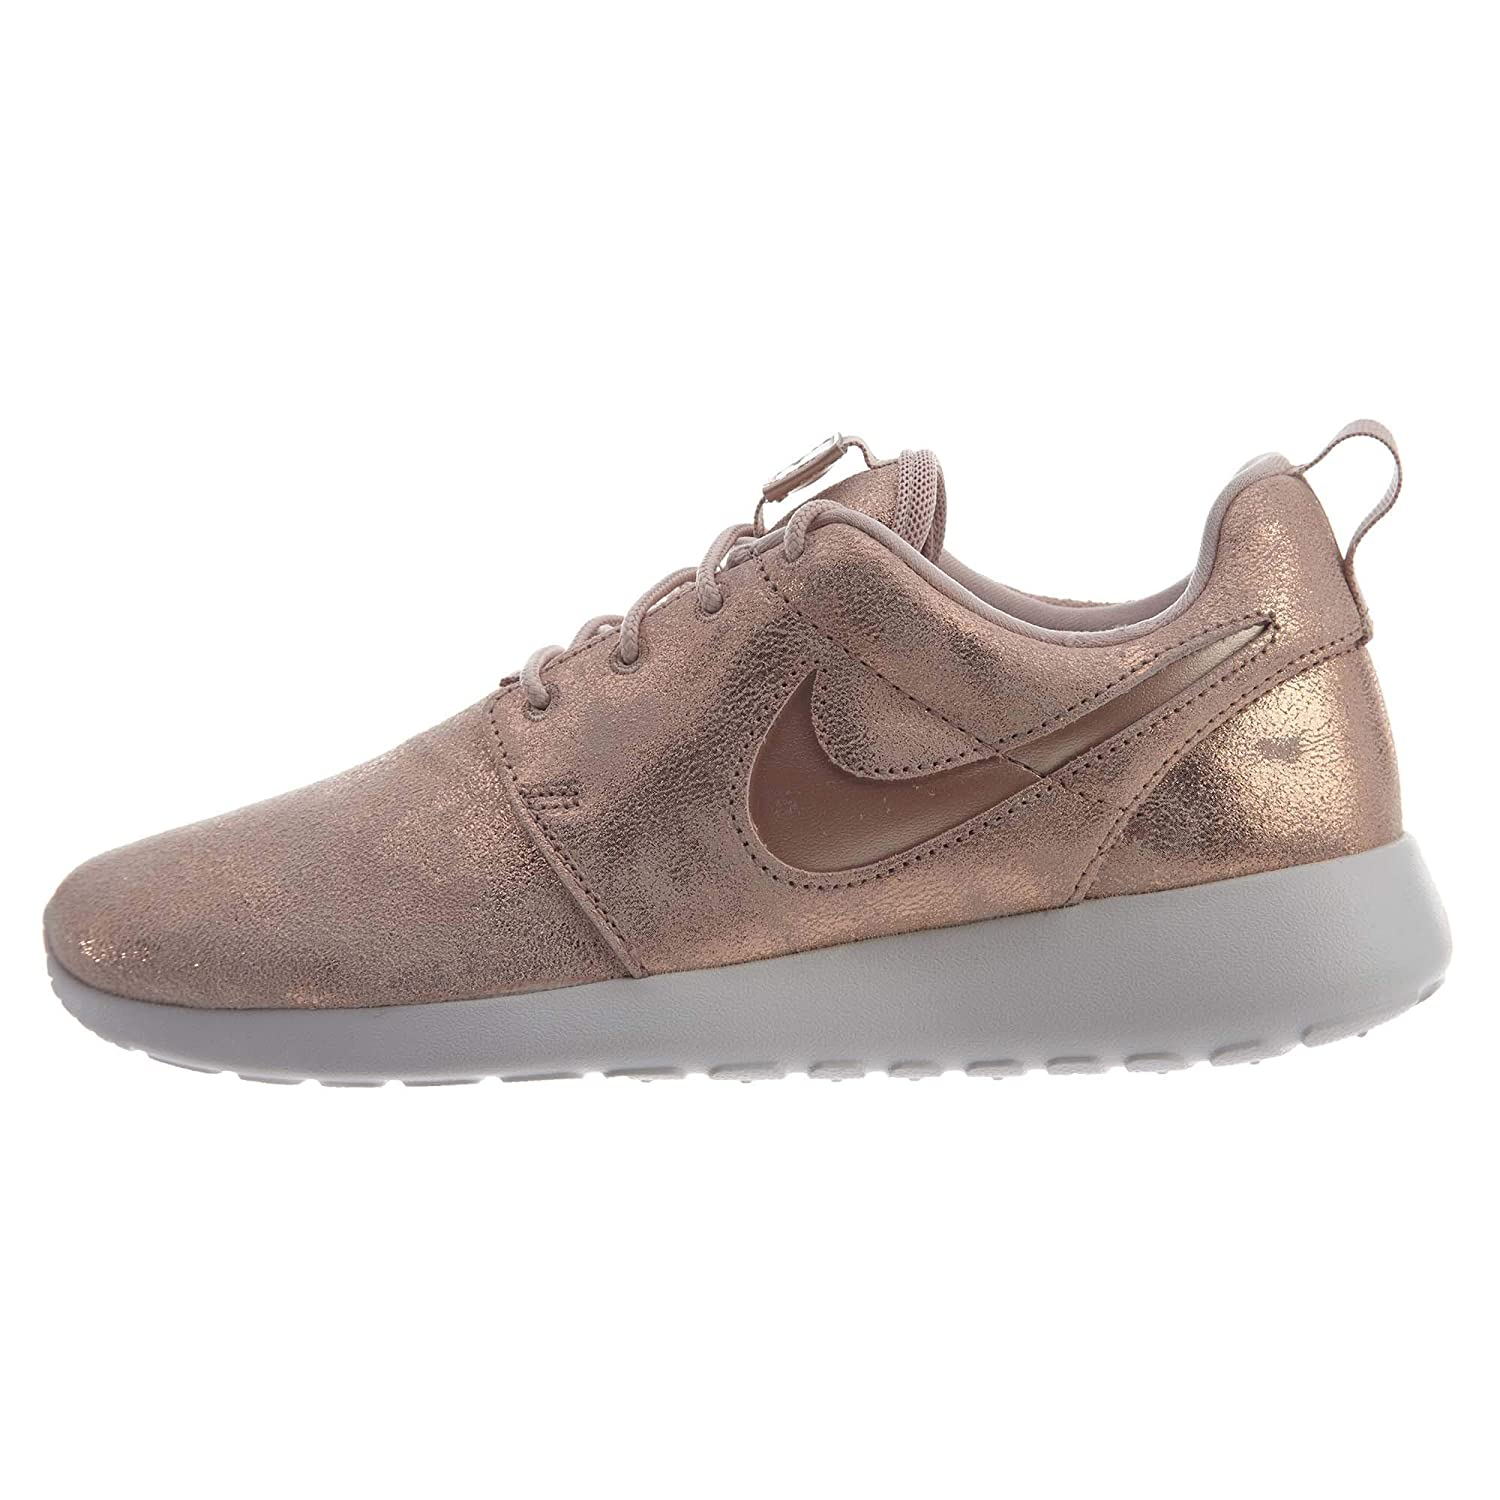 Metallic Red Bronze Nike Women's Roshe One Premium shoes